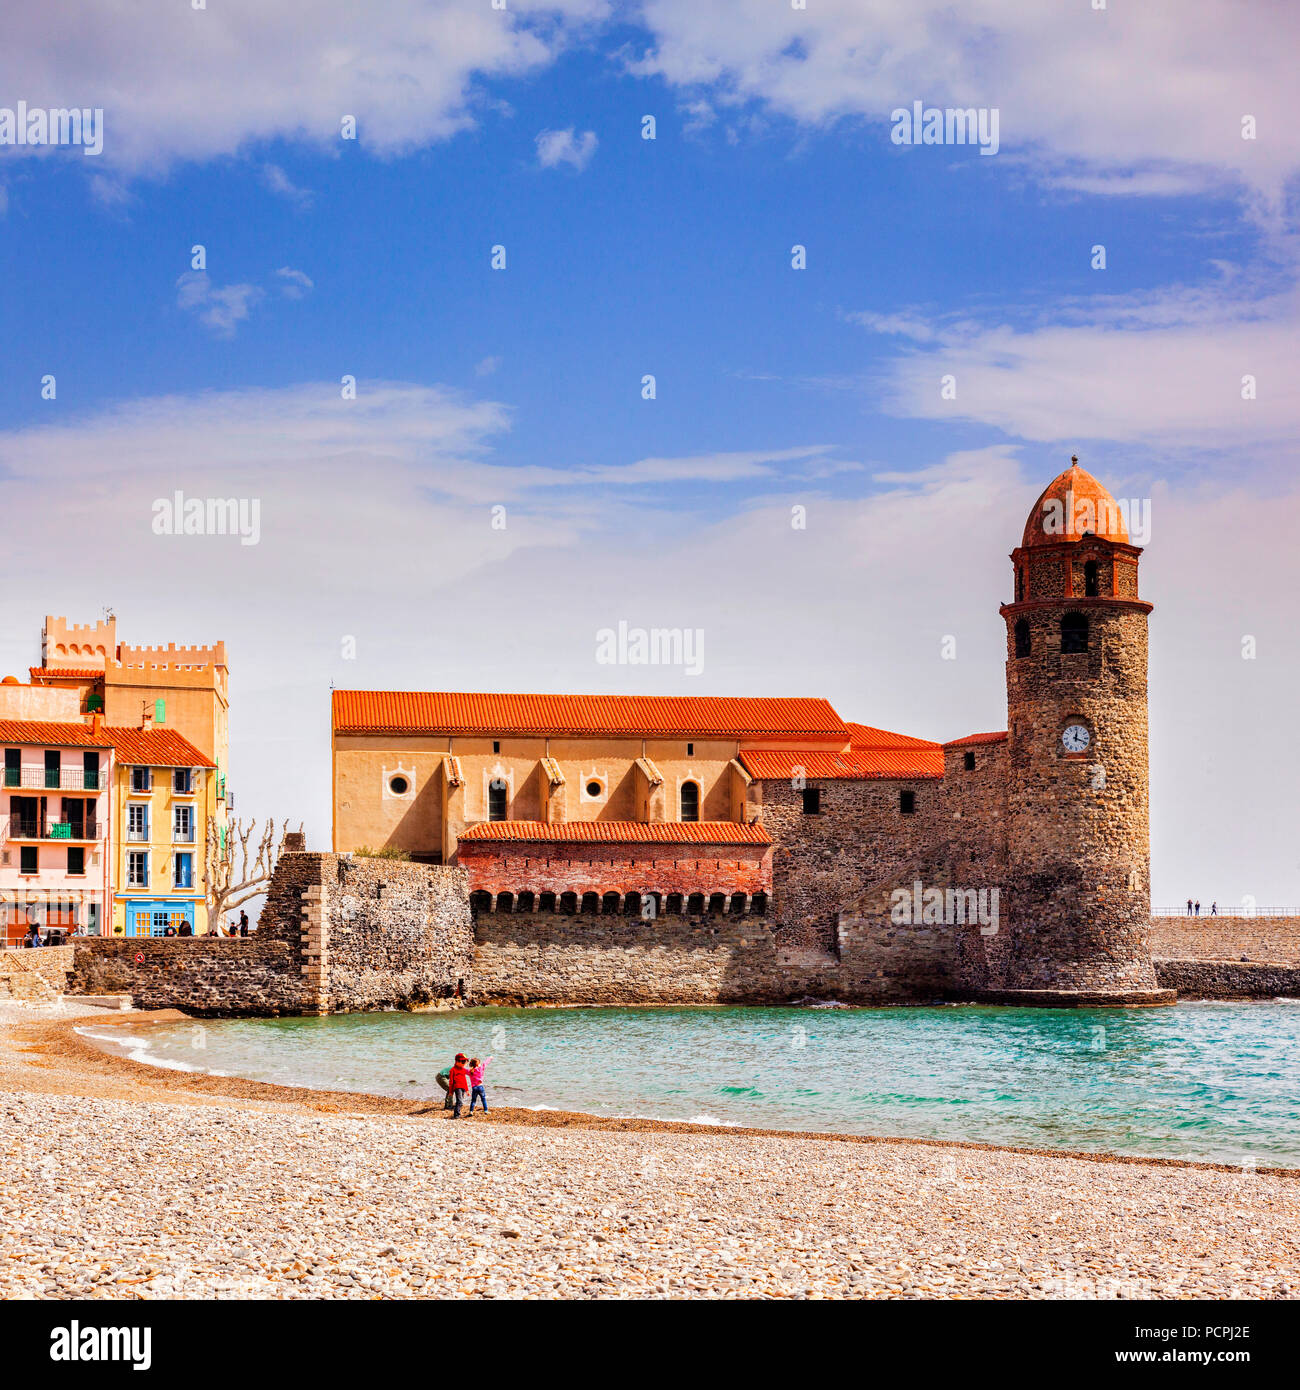 The beach and the Church of Notre Dame des Anges at Collioure, Languedoc-Roussillon, Pyrenees-Orientales, France. - Stock Image